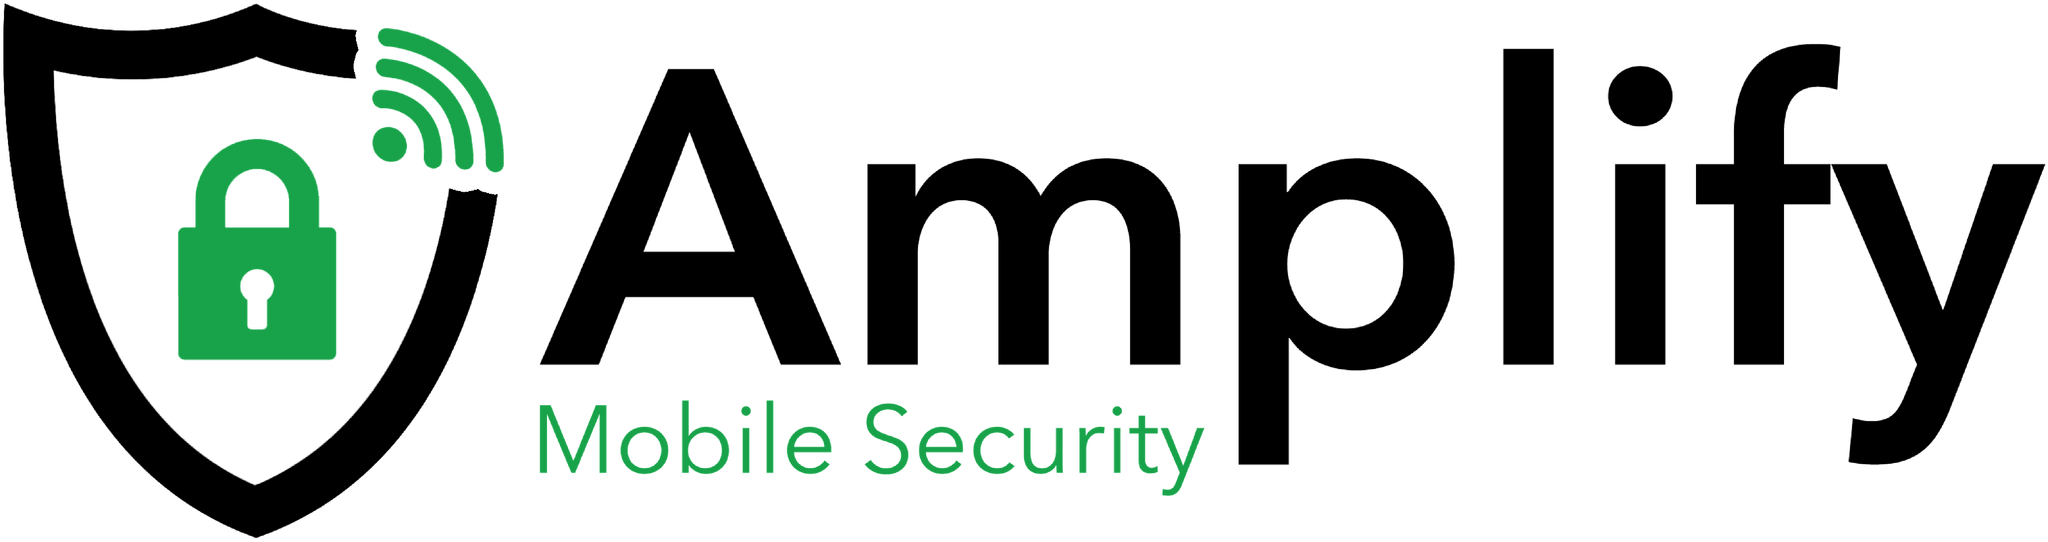 Cyber Secure Ltd - Amplify Mobile Security